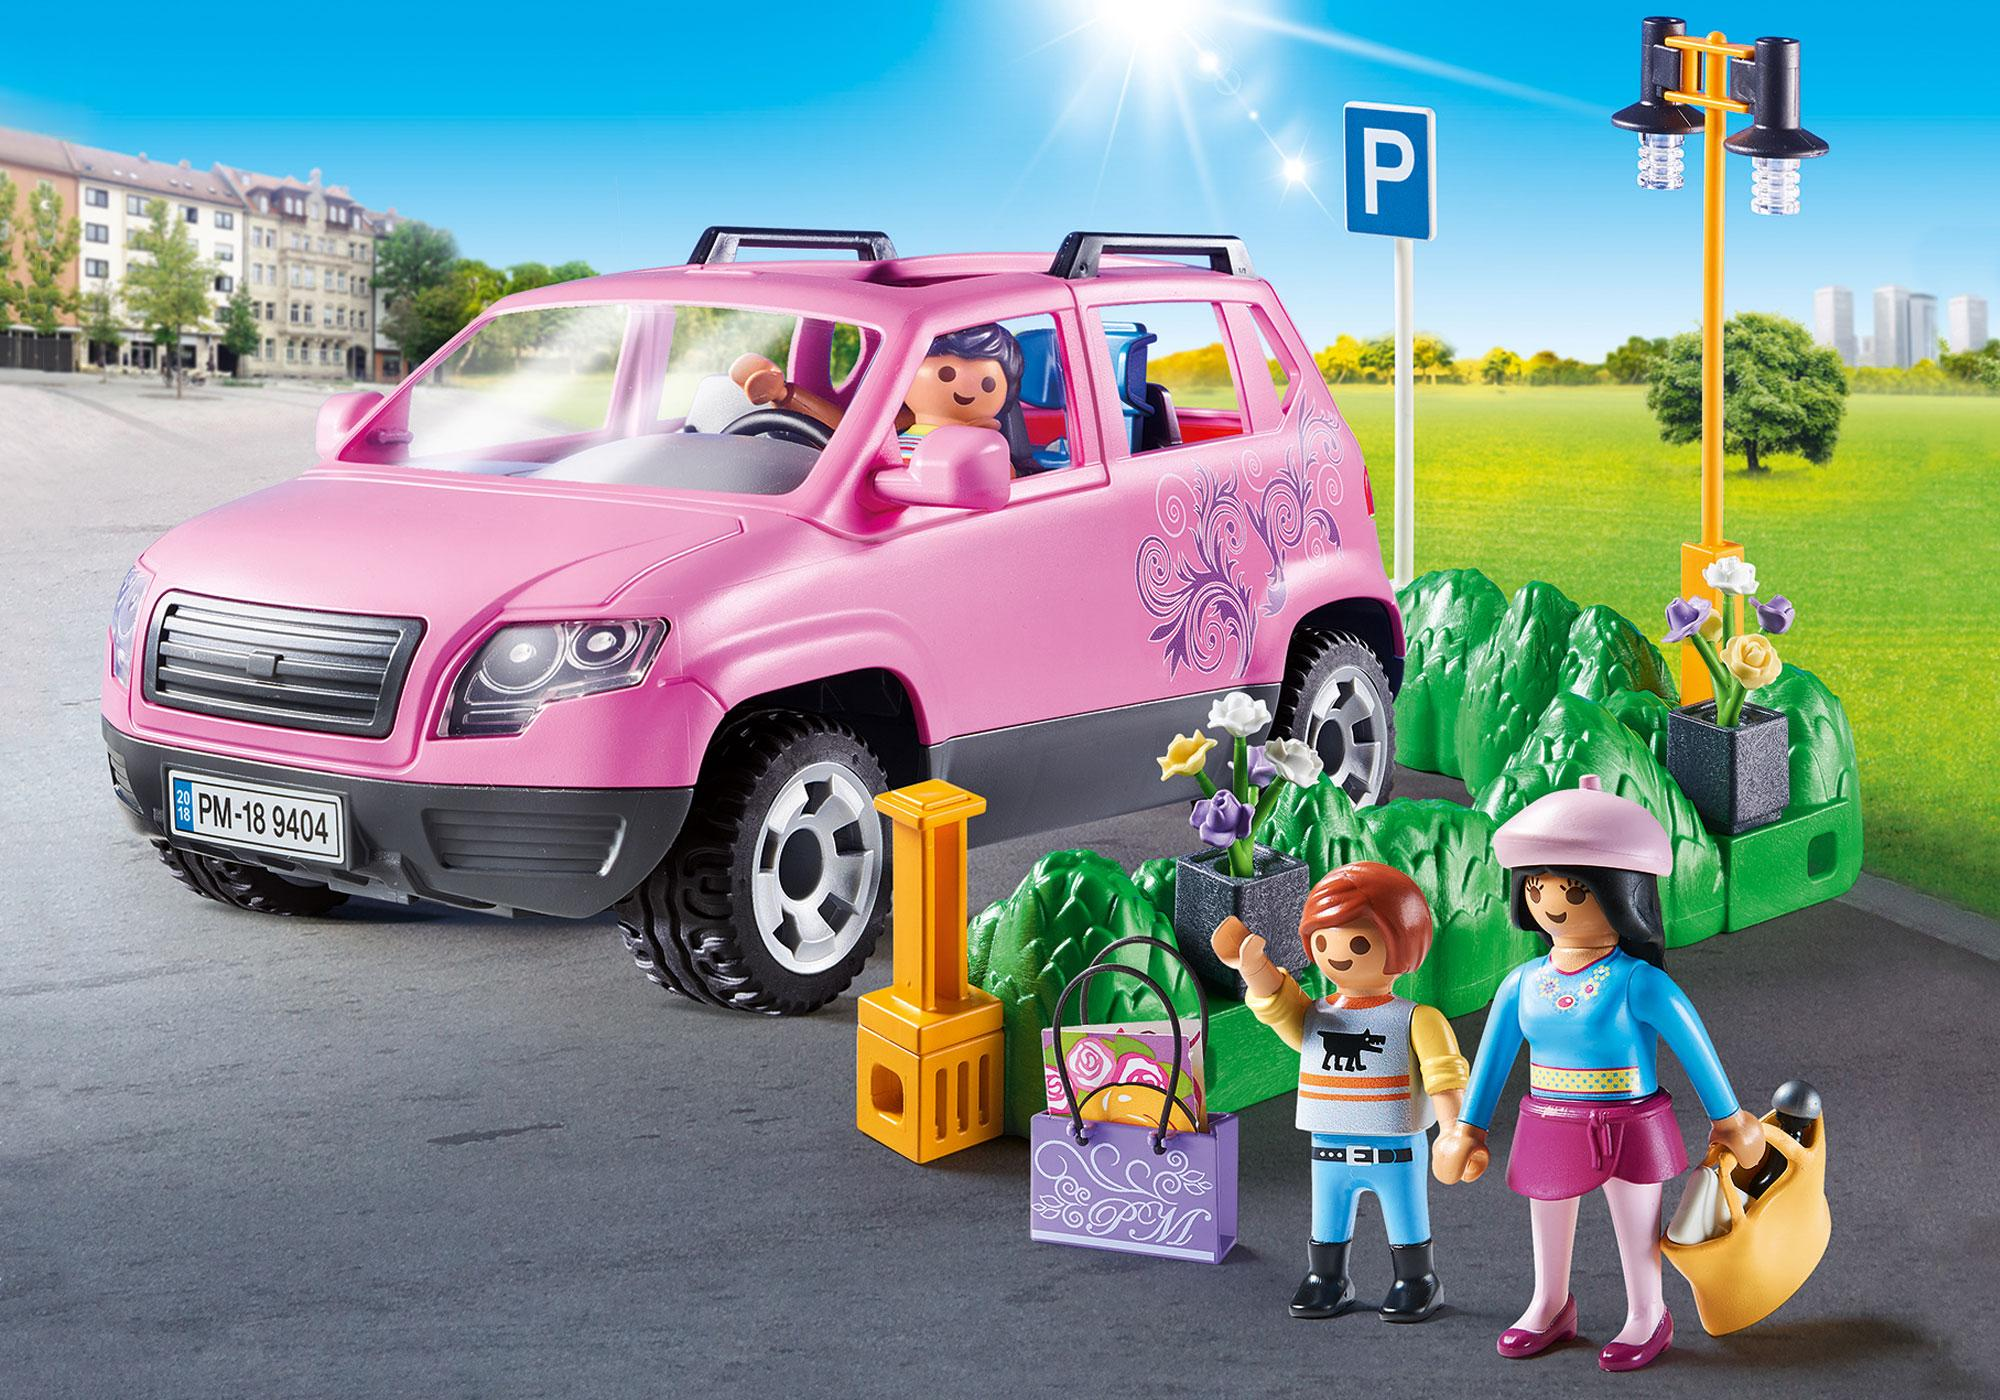 http://media.playmobil.com/i/playmobil/9404_product_detail